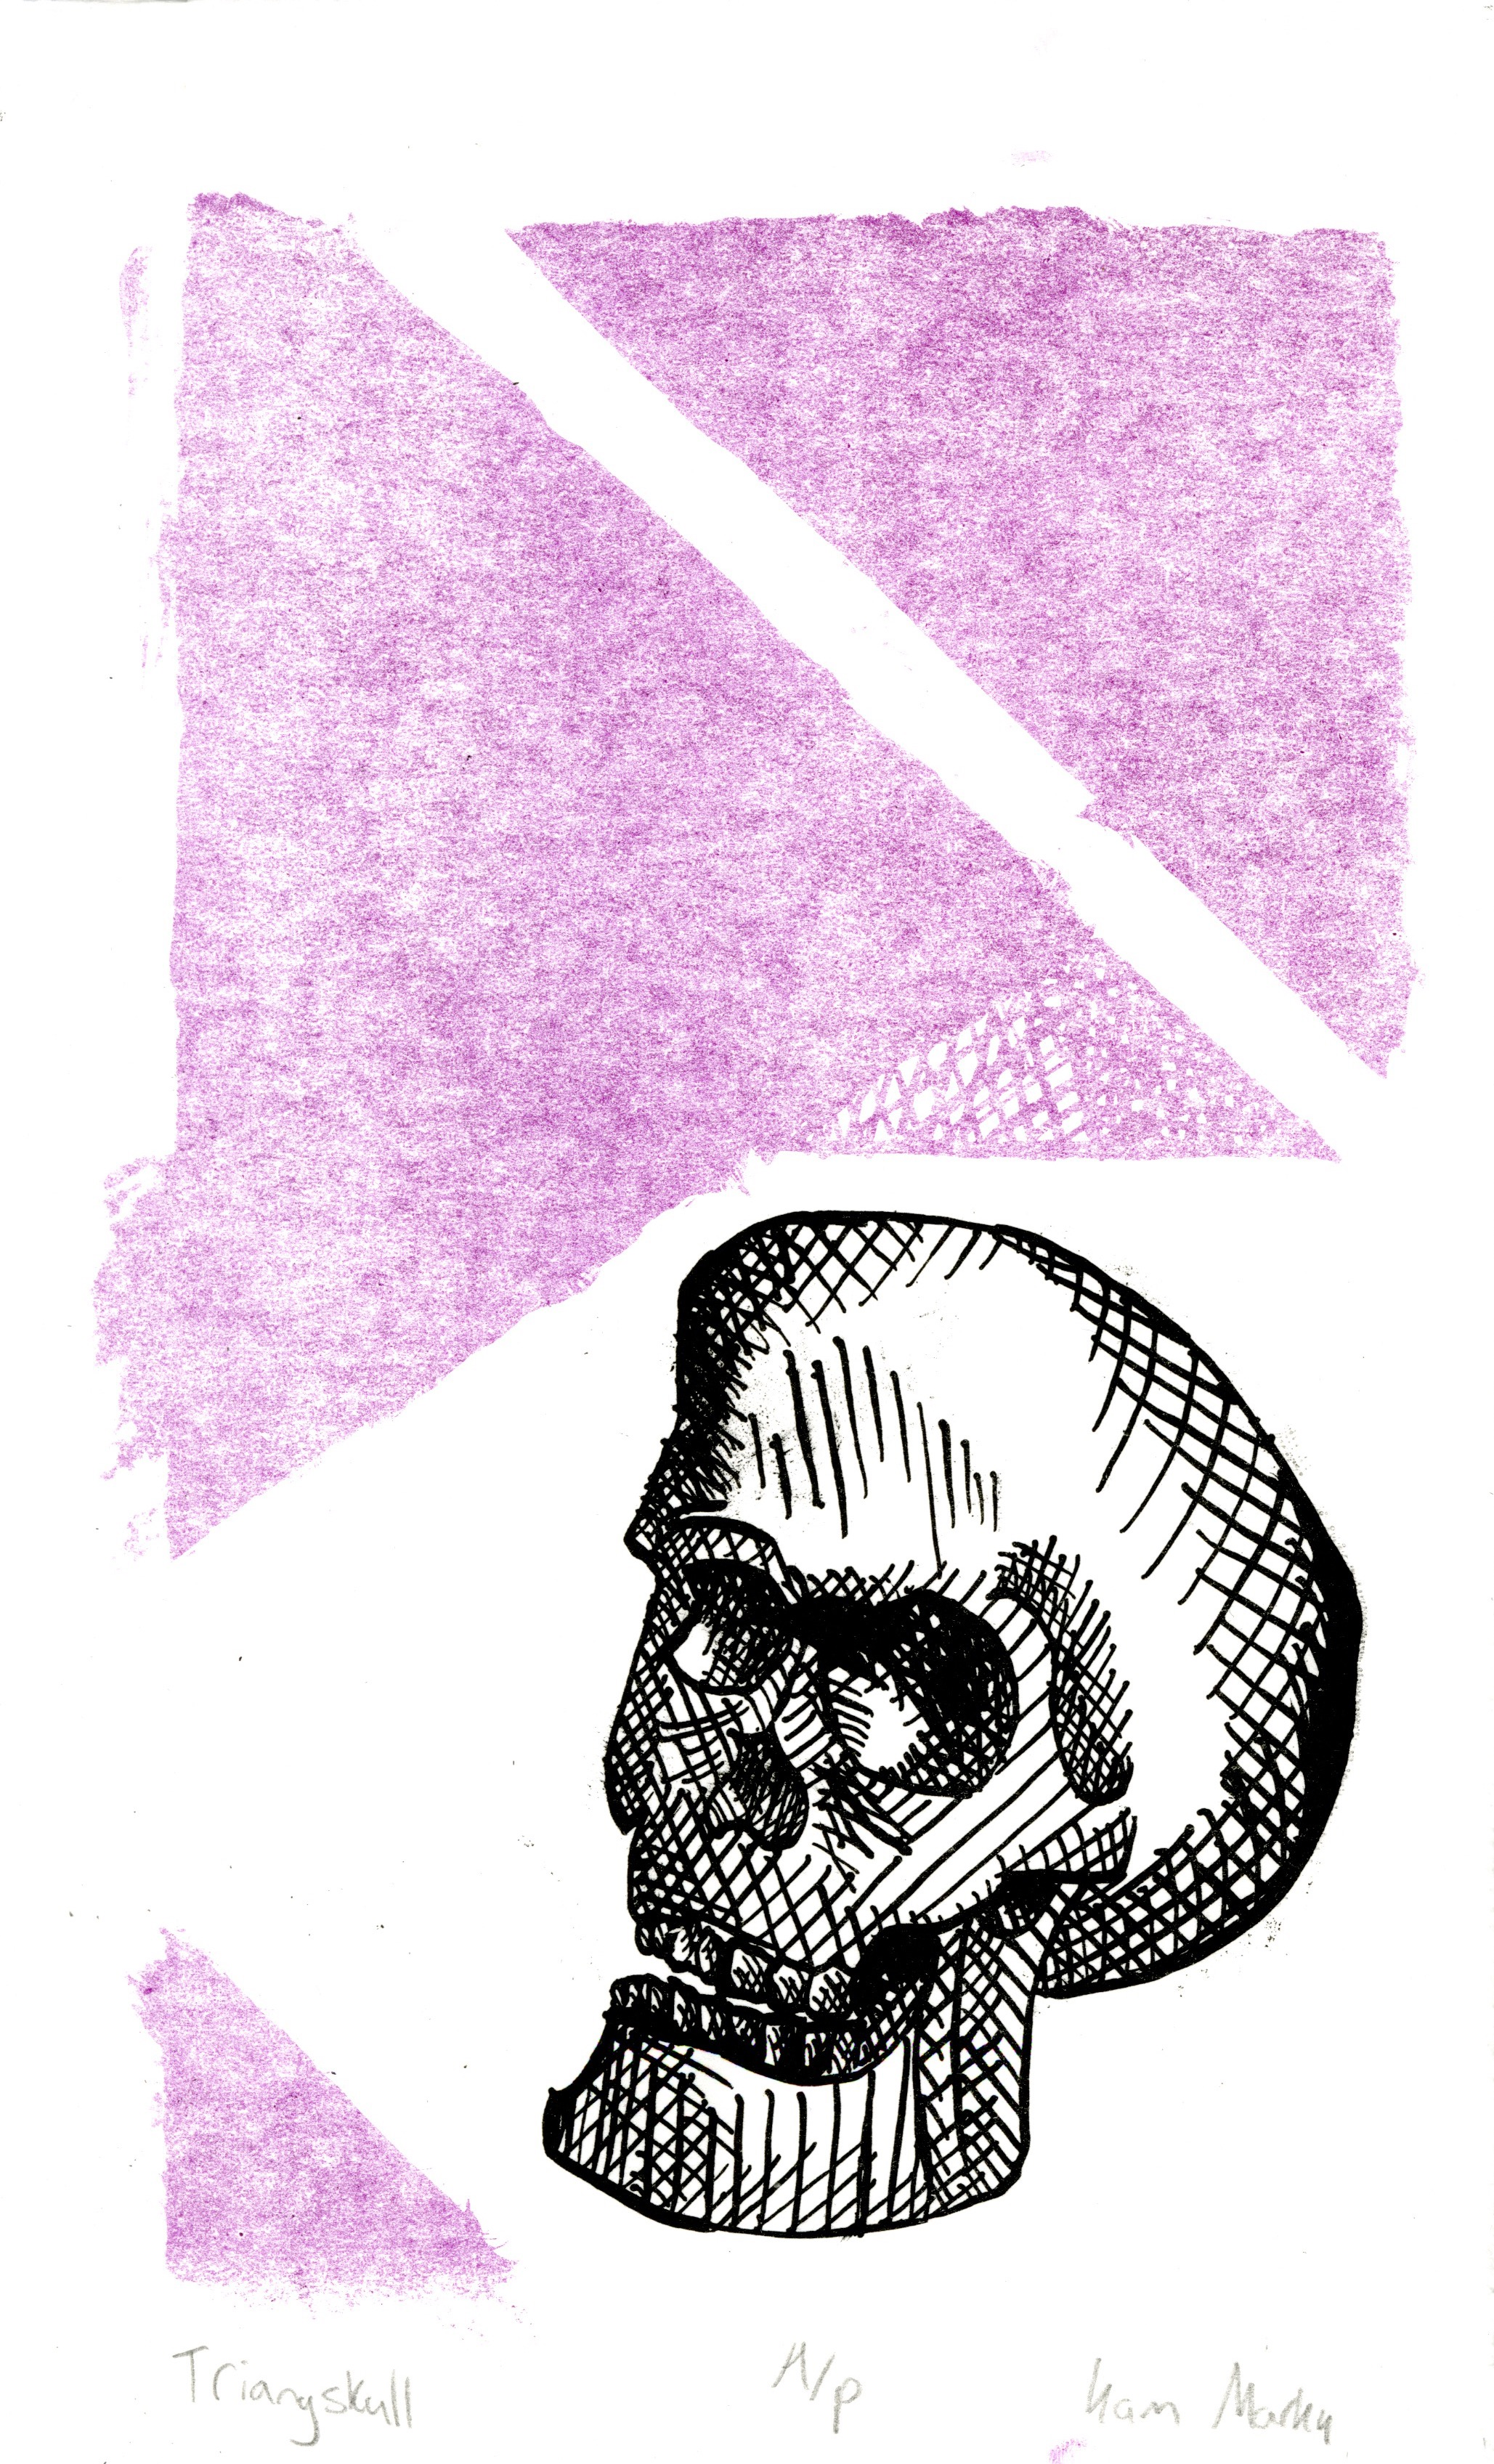 Triangskull, Lithograph